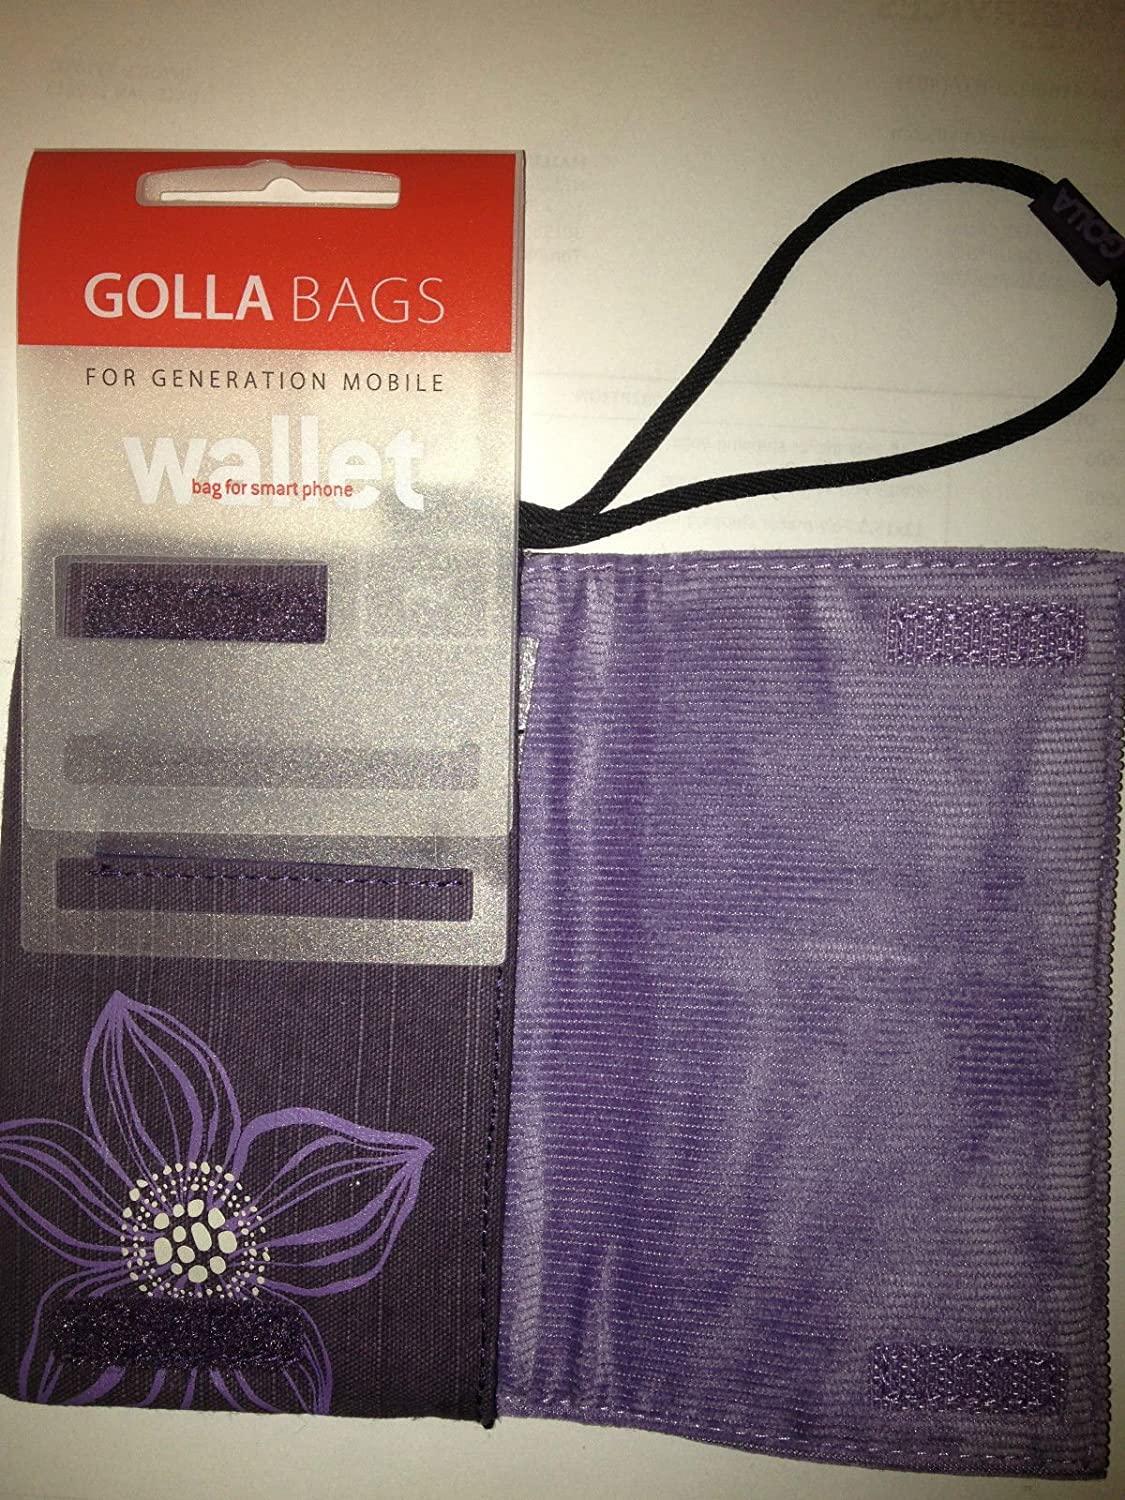 golla generation mobile  : Golla Bags Generation Mobile Smart Phone Wallet Milfoil ...